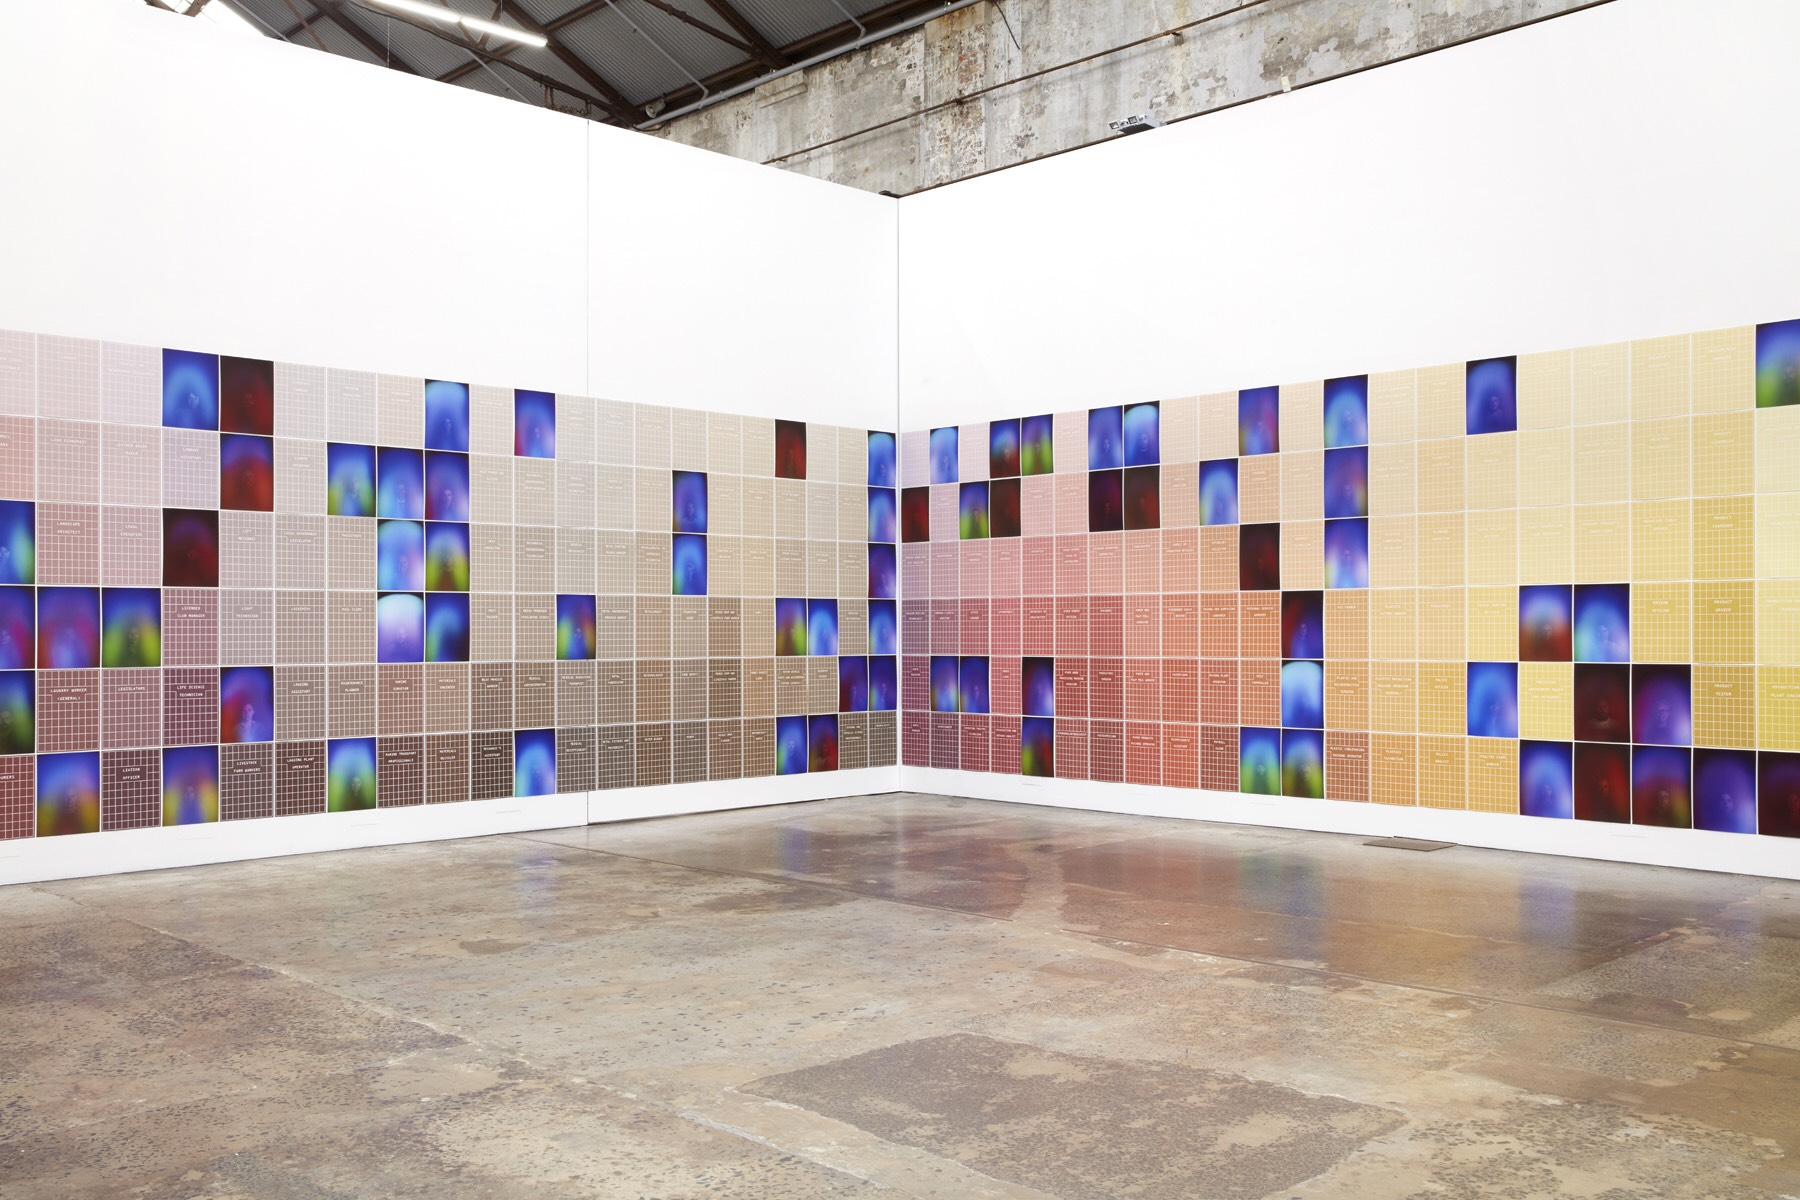 Kate Mitchell's All Auras Touch at Carriageworks